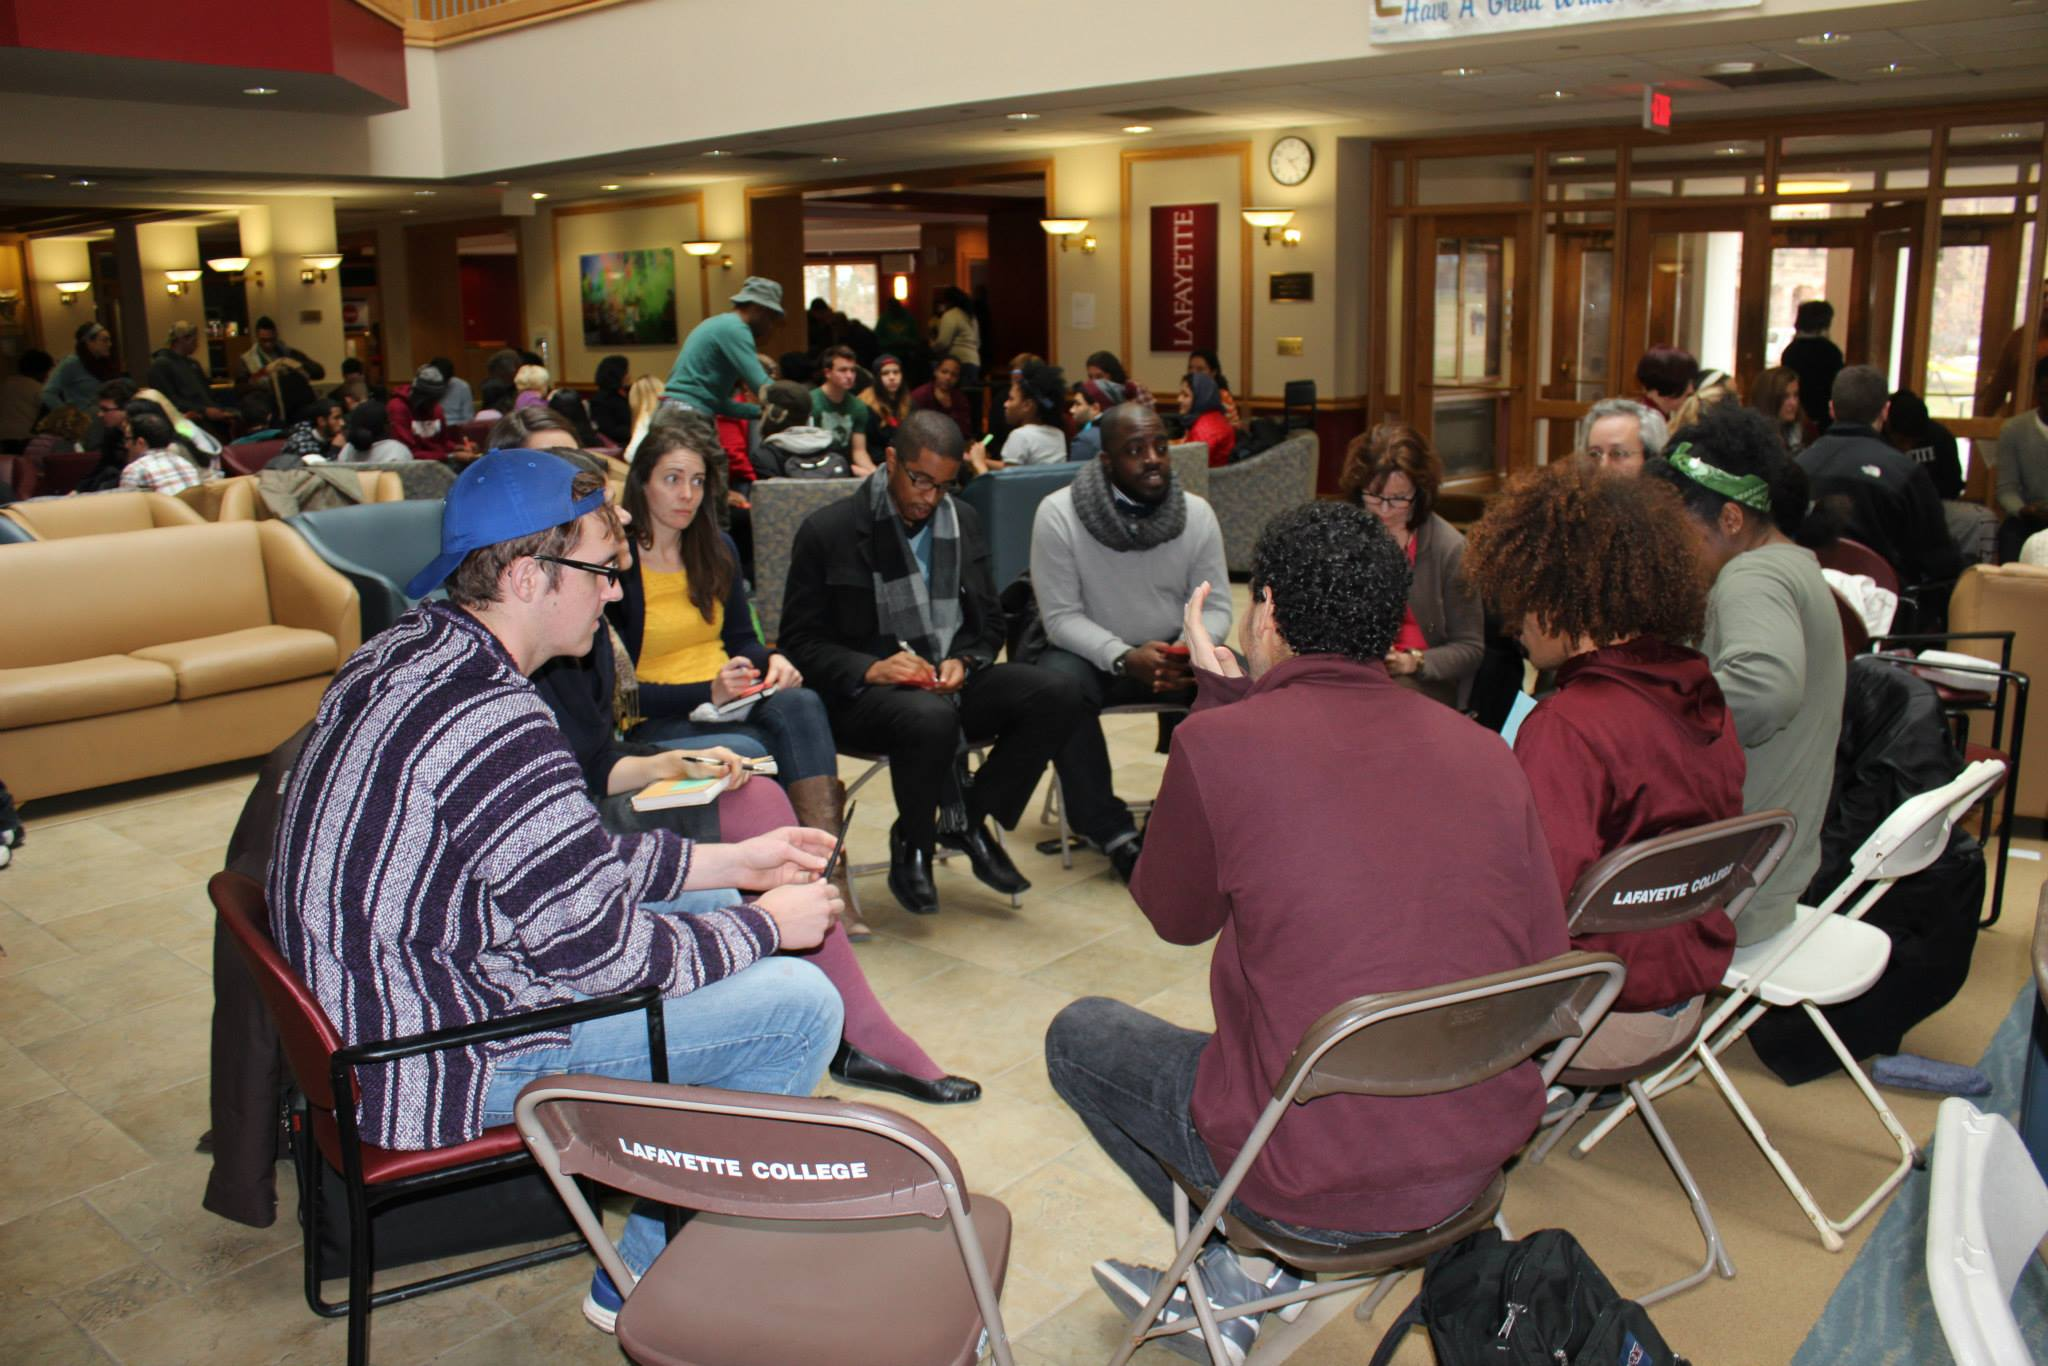 Students, faculty, administrators, staff and residents of Easton discuss spoke about personal experiences and national issues in groups.